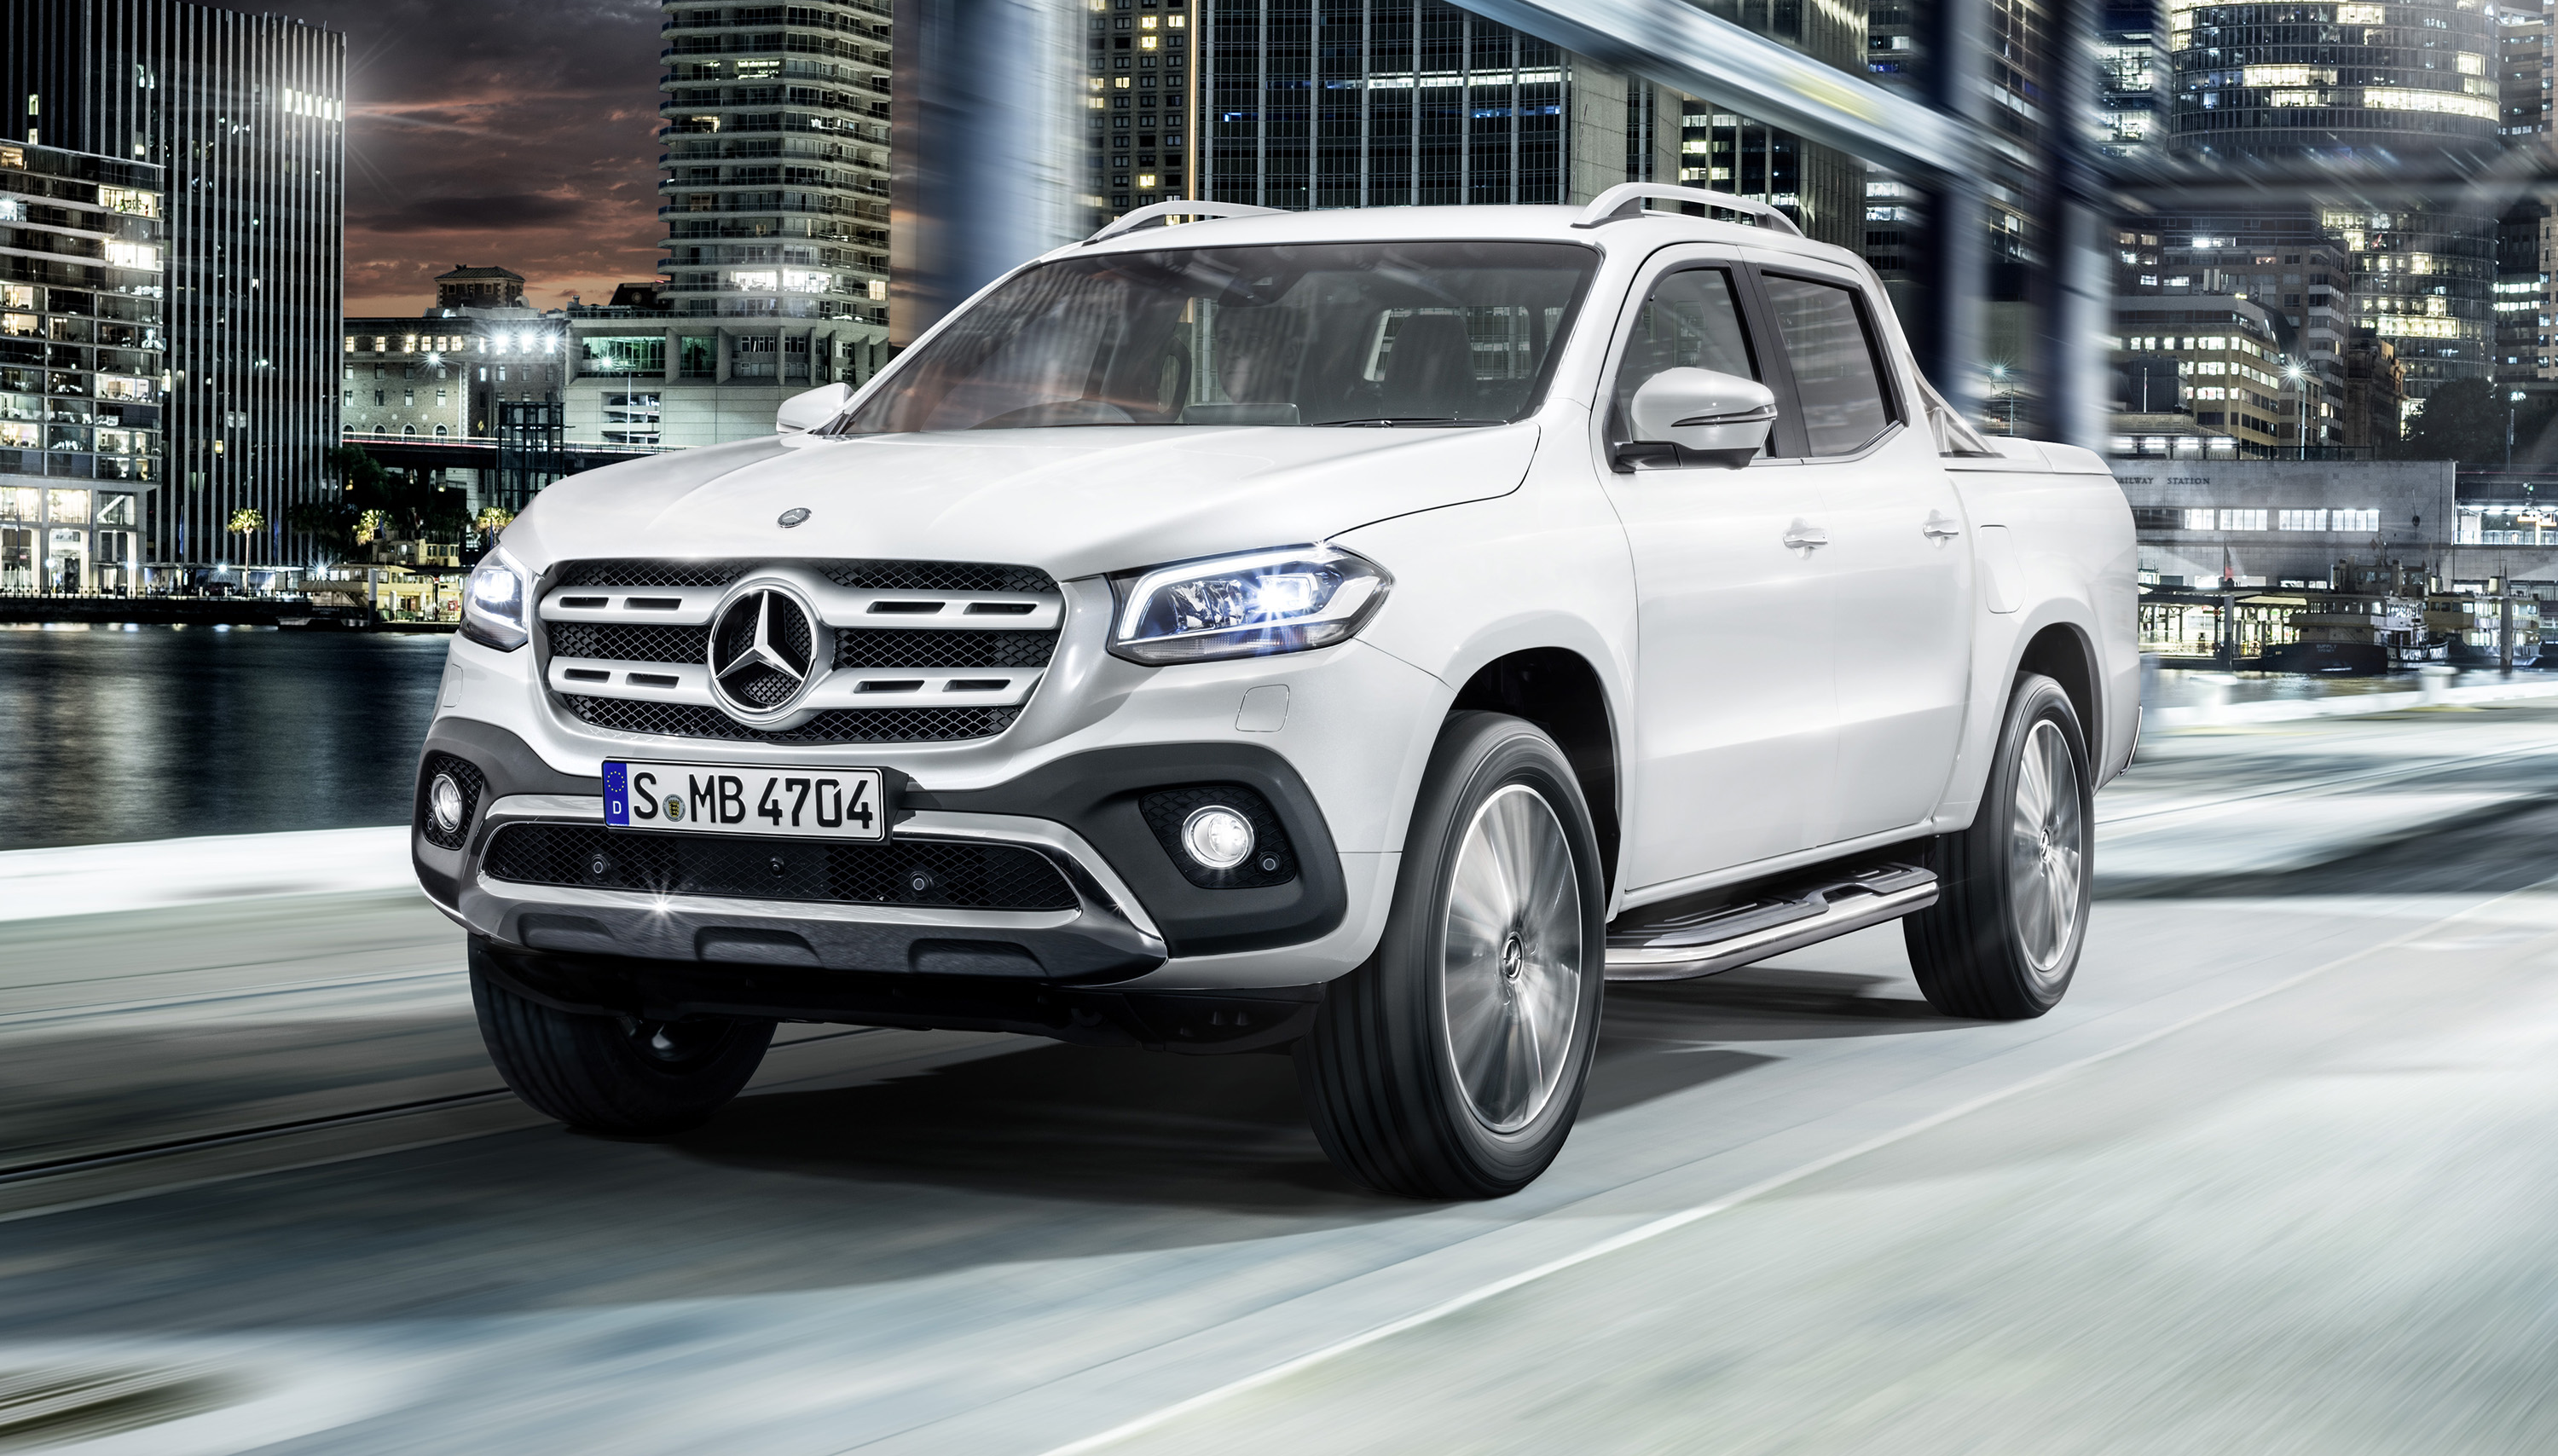 Mb X? S? Mercedes Benz X Class V6 To Tackle Amarok Photos Caradvice